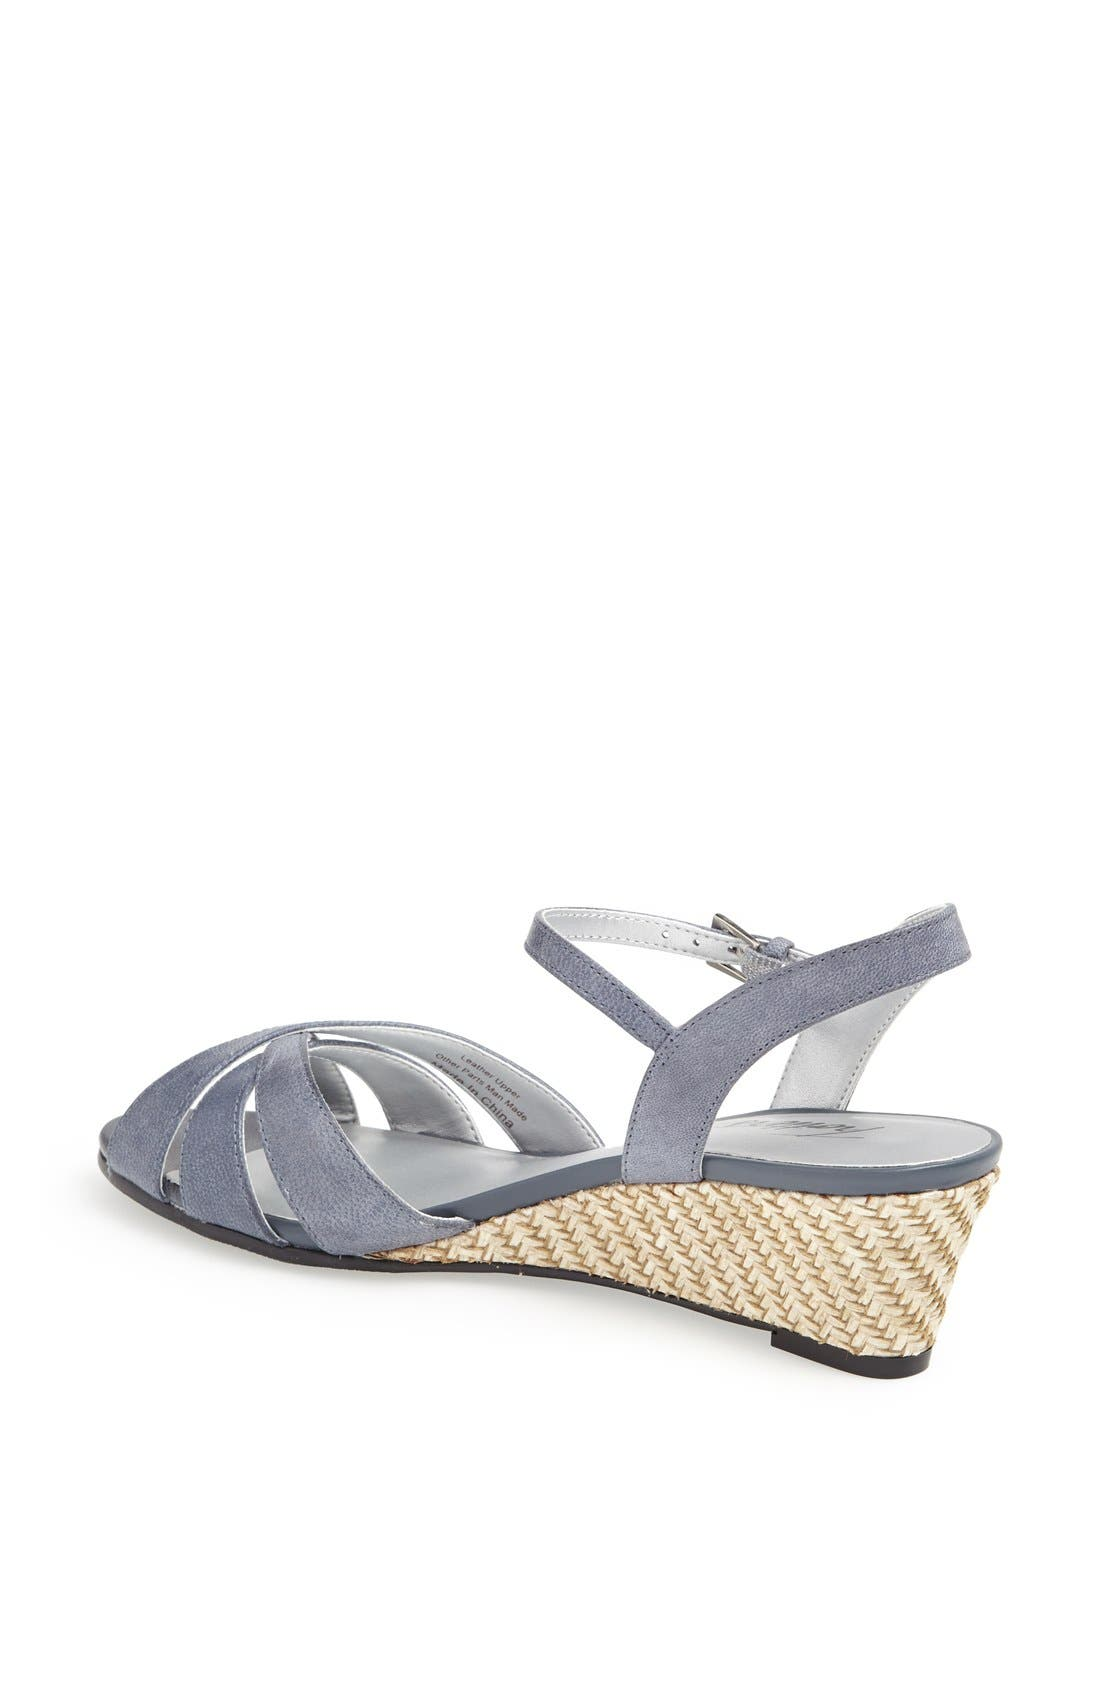 'Mickey' Wedge Sandal,                             Alternate thumbnail 39, color,